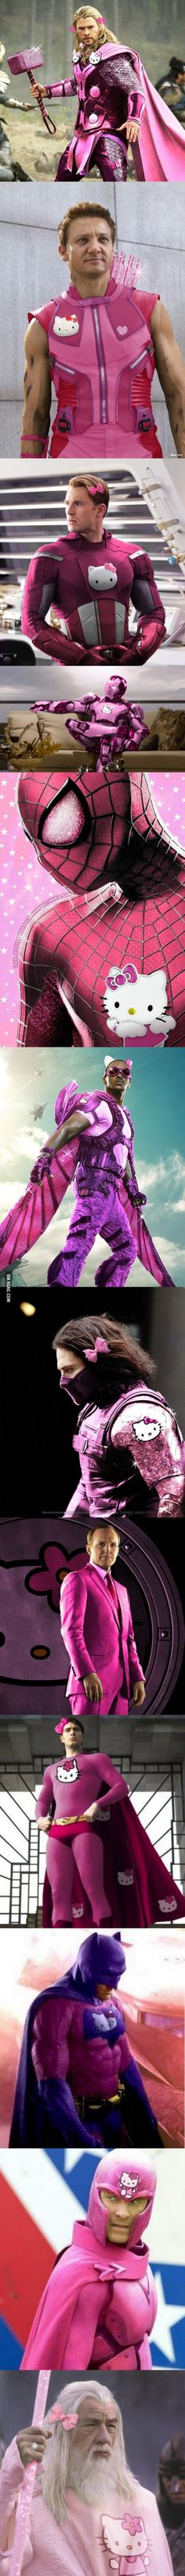 Photoshop Experts Hello Kitty-fy Masculine Superheroes With Sparkly Pink Costumes - 9GAG